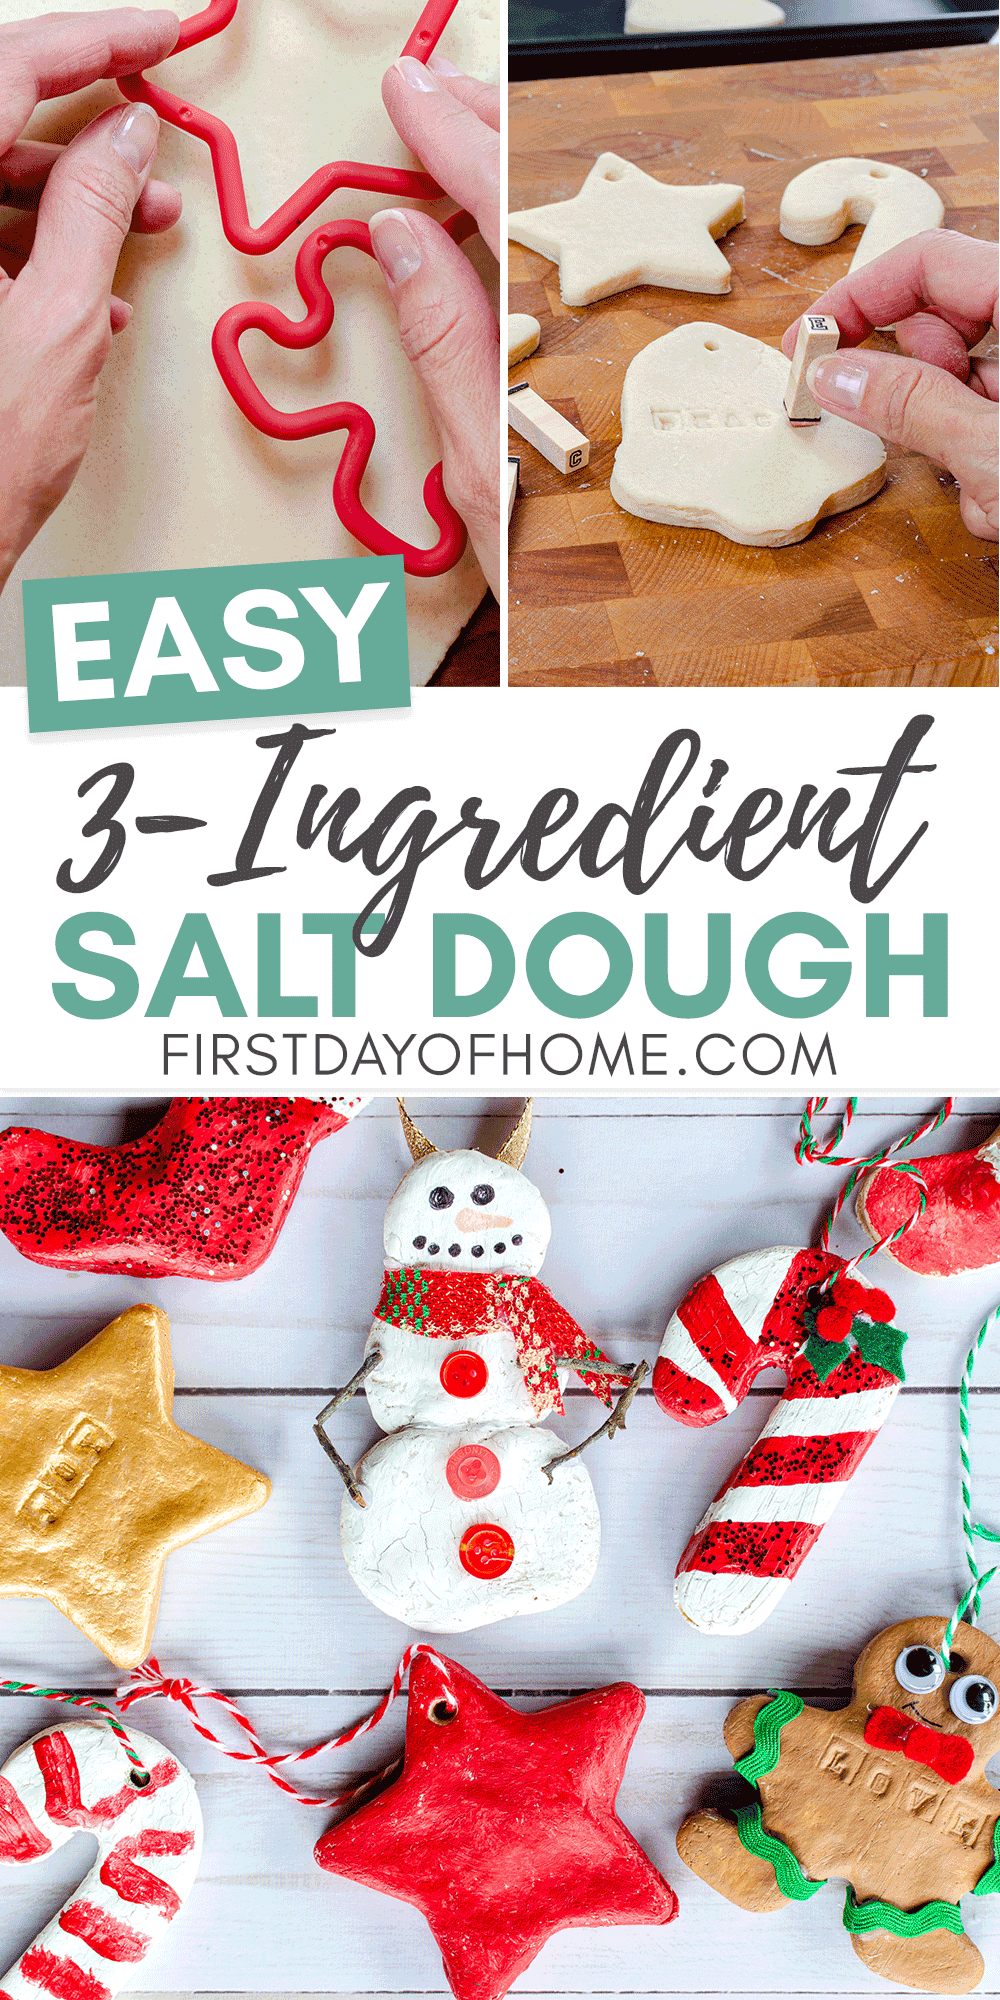 How to Make Salt Dough Ornaments the Kids Will Love